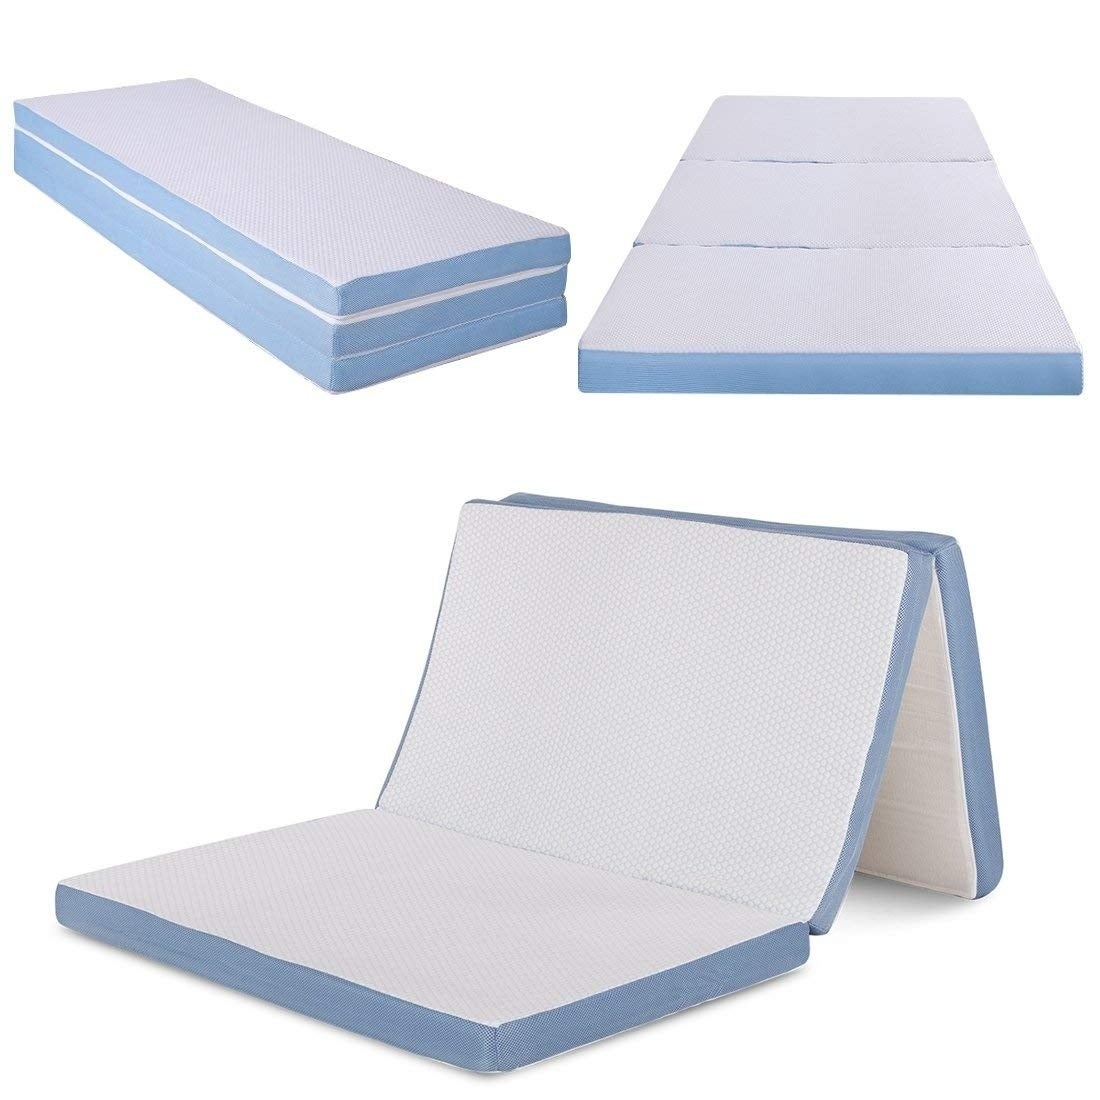 Some Ideas on Twin Memory Foam Mattress You Should Know